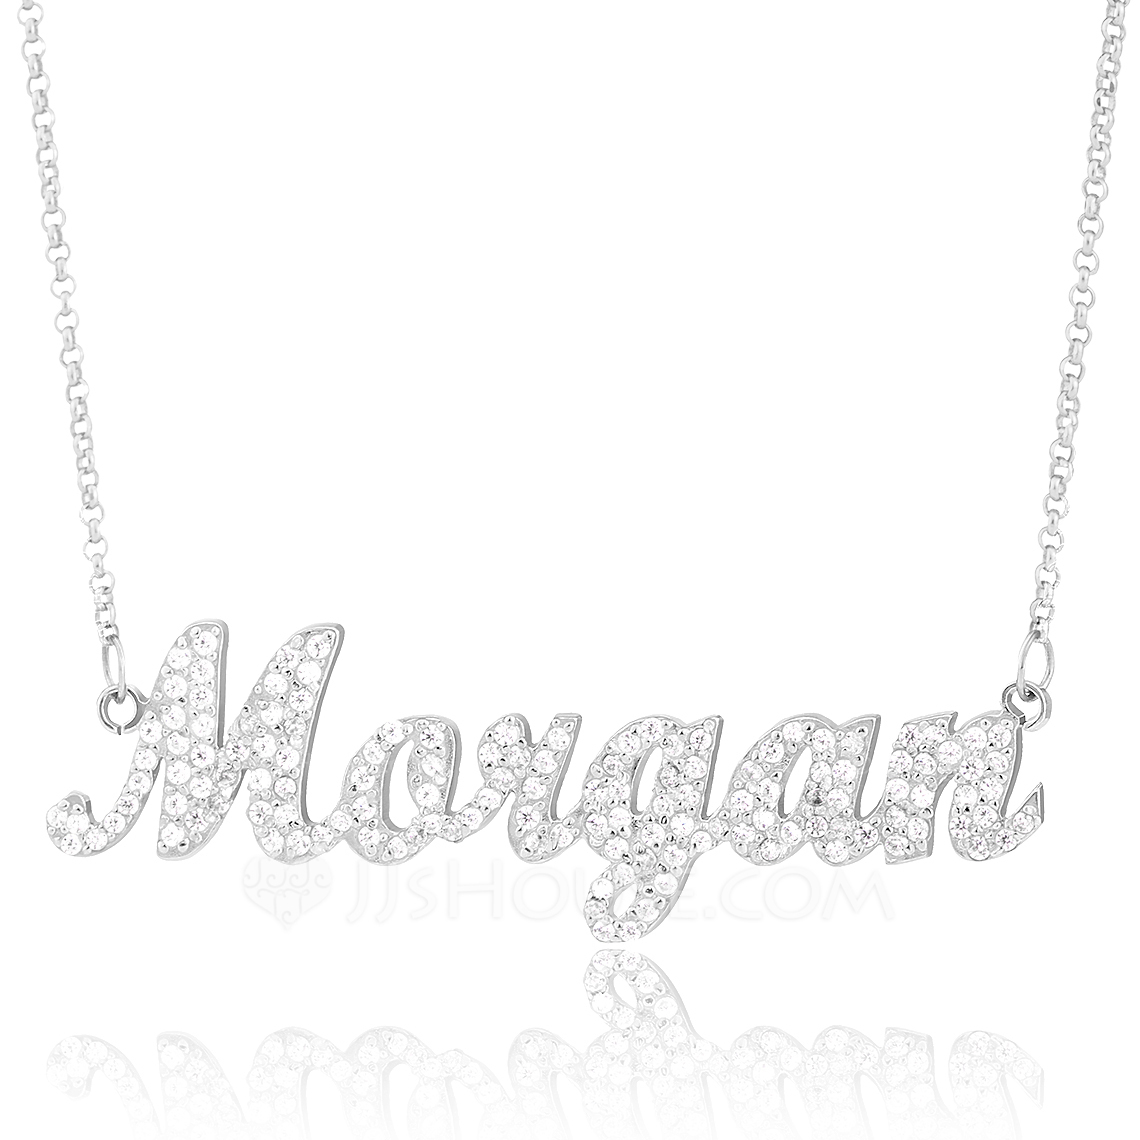 Custom Sterling Silver Plate Name Necklace With Diamond - Birthday Gifts Mother's Day Gifts